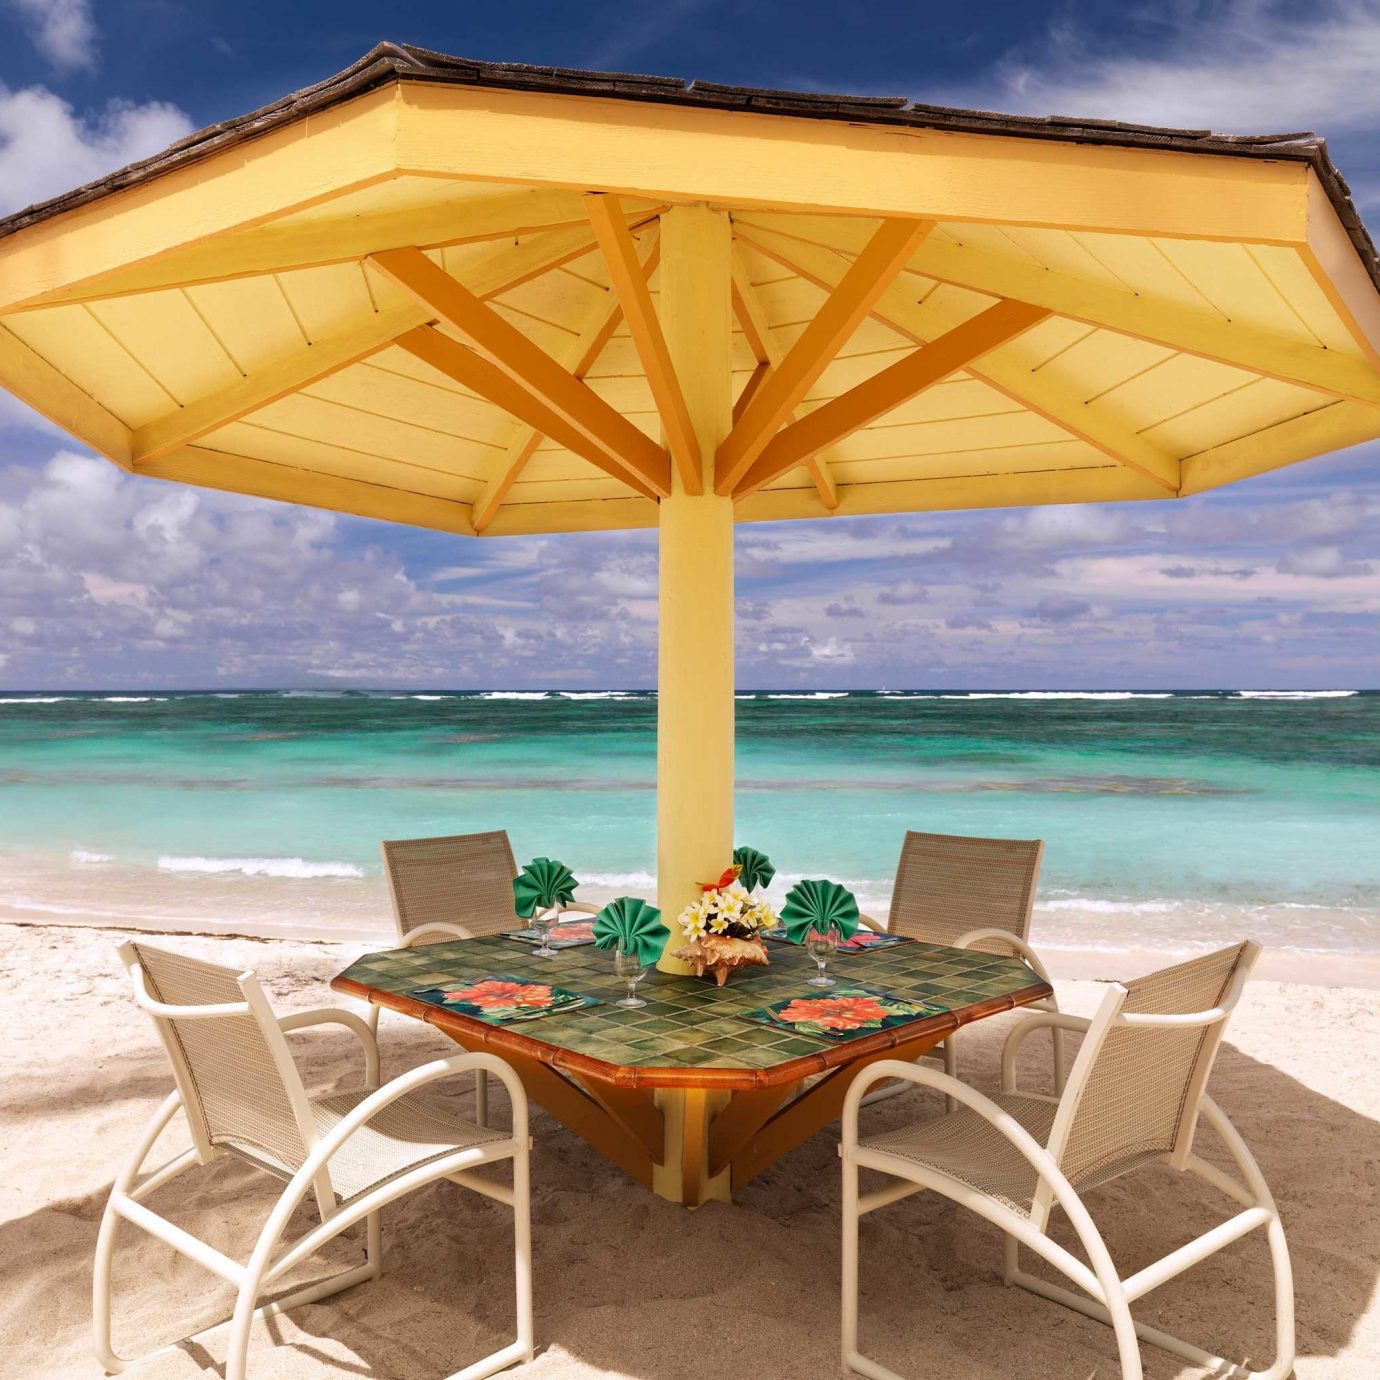 Bar Beach Beachfront Dining Drink Eat Luxury Scenic views umbrella sky chair water ground lawn set outdoor structure empty shore day